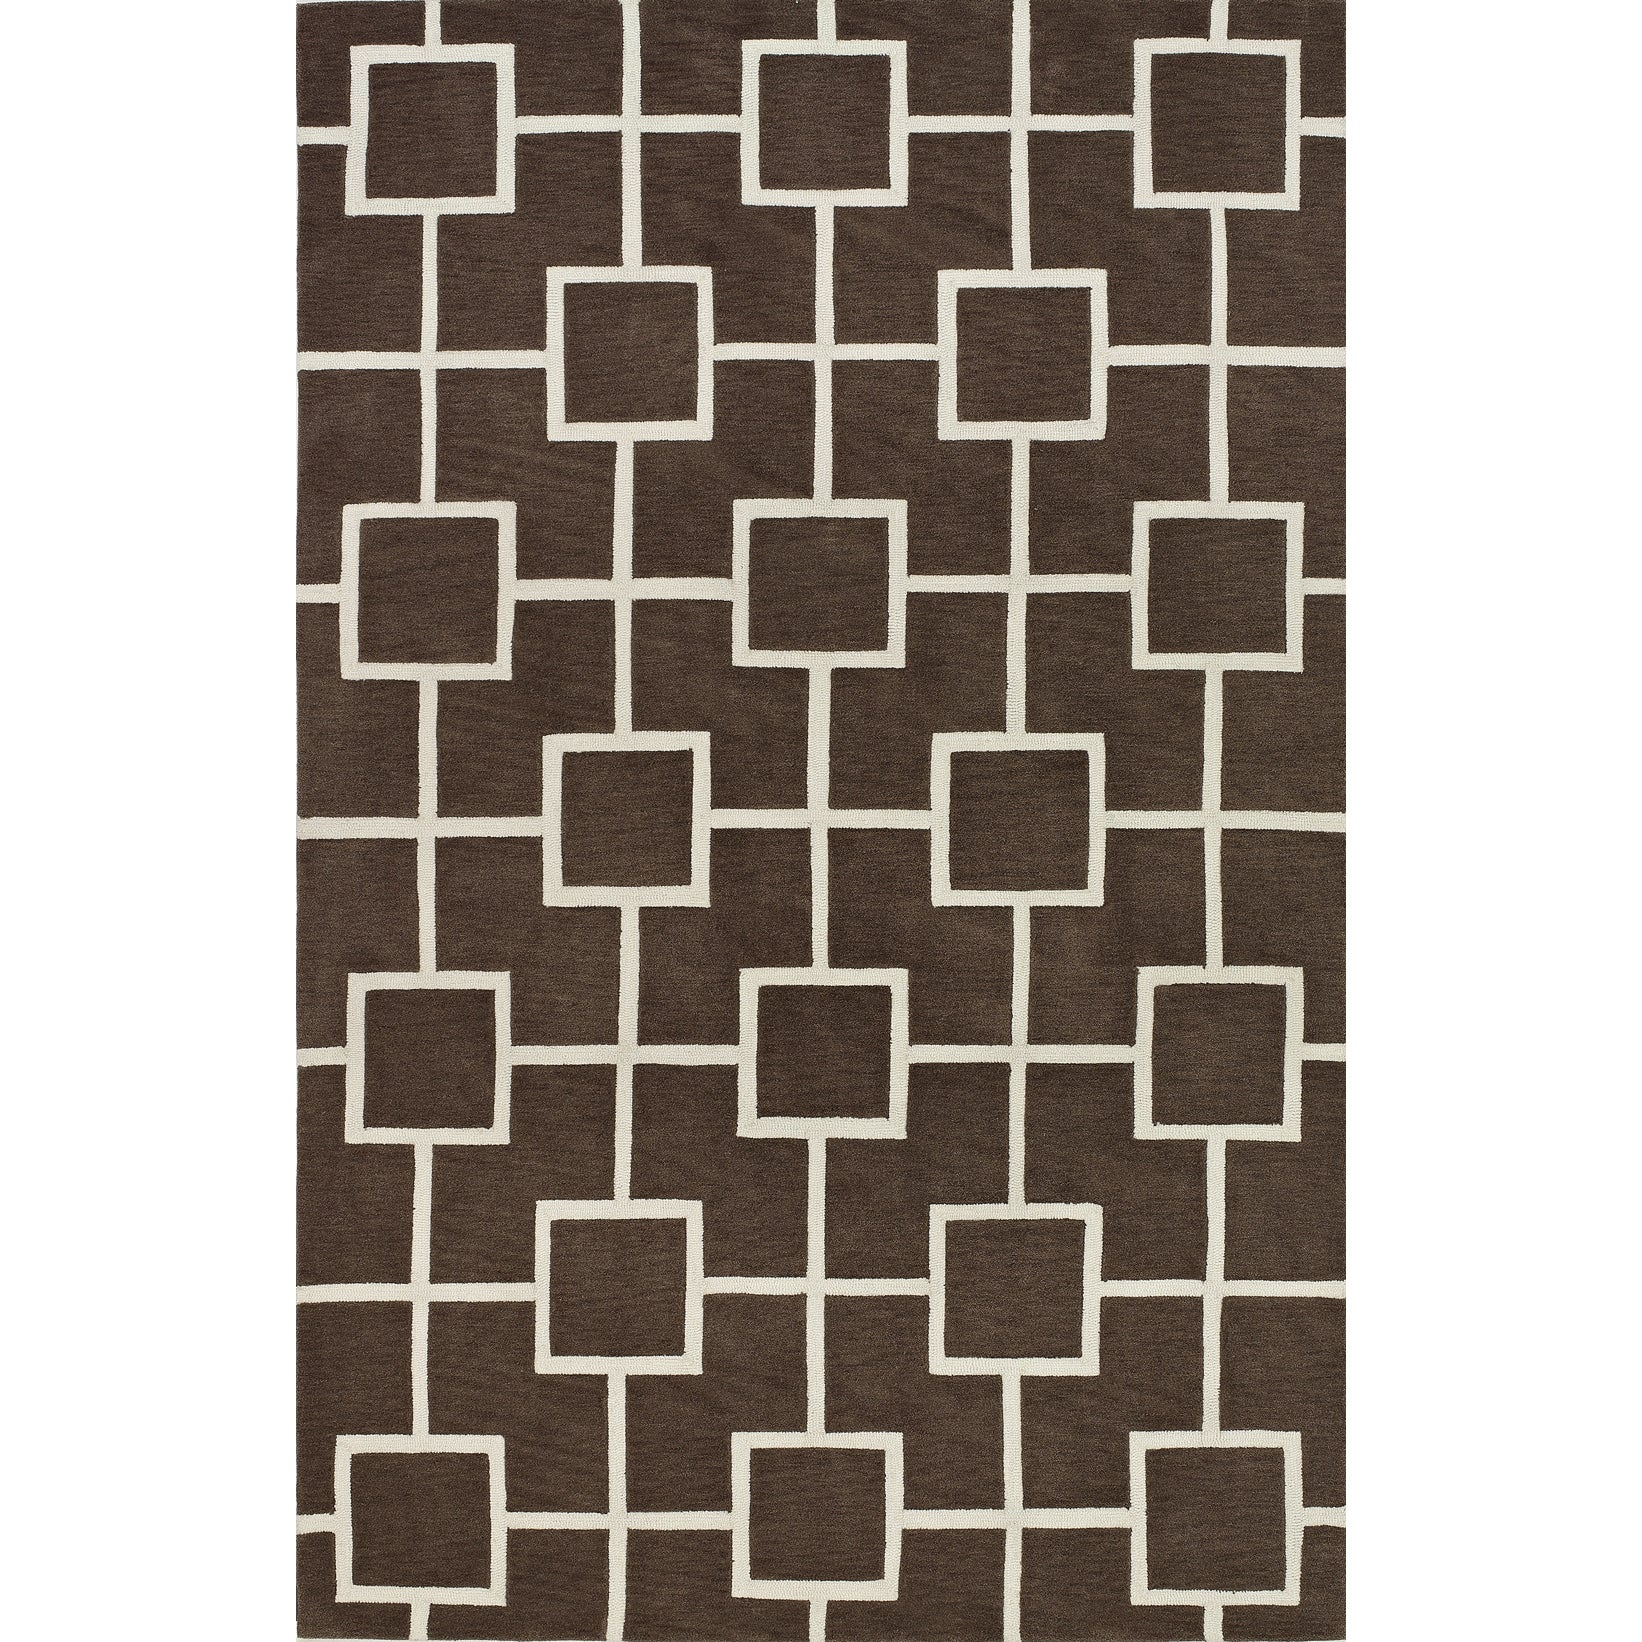 Addison Rugs Optics Square Modern Geometric Brown White Area Rug